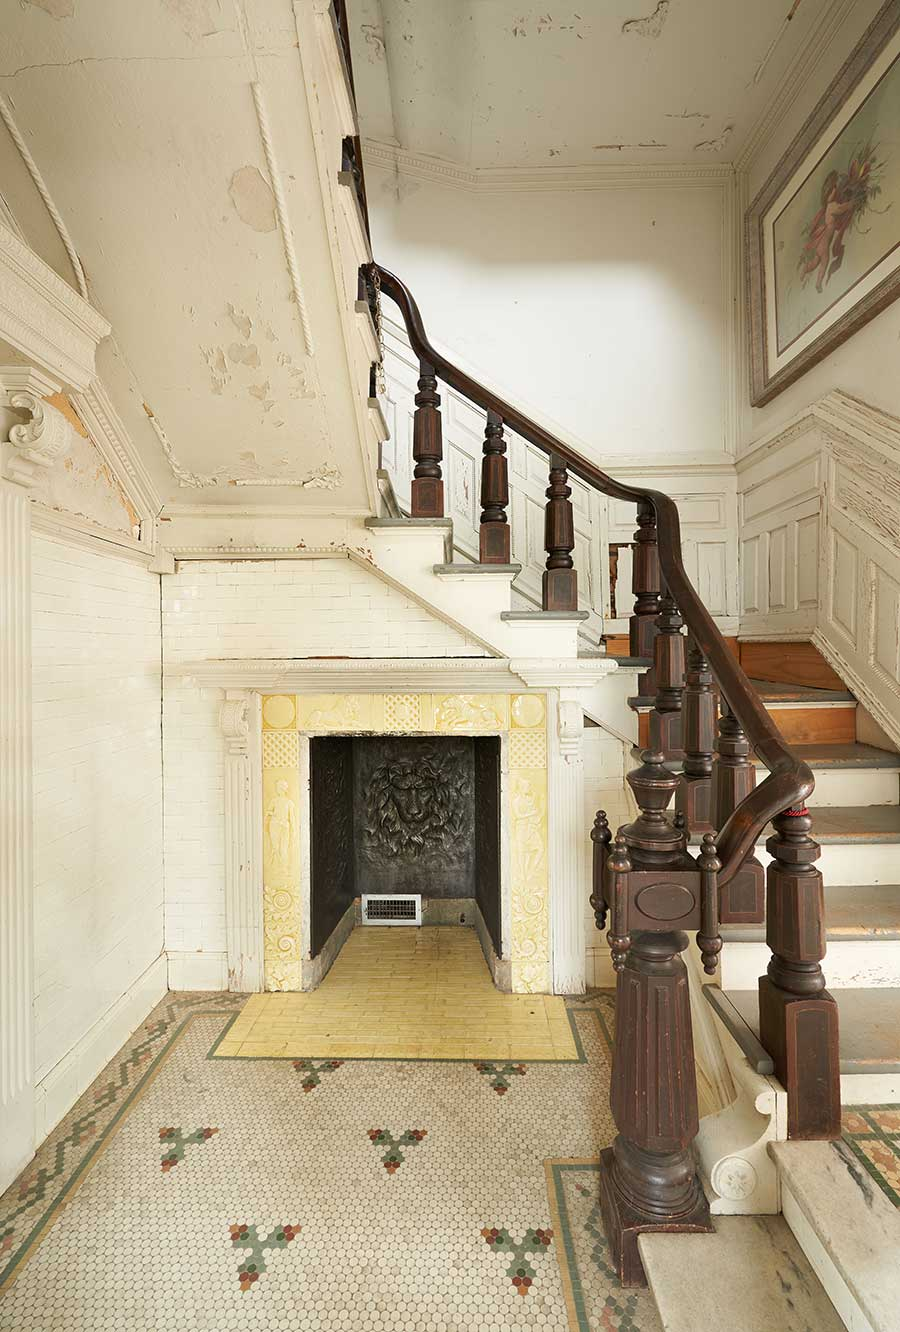 The North Staircase, before restoration